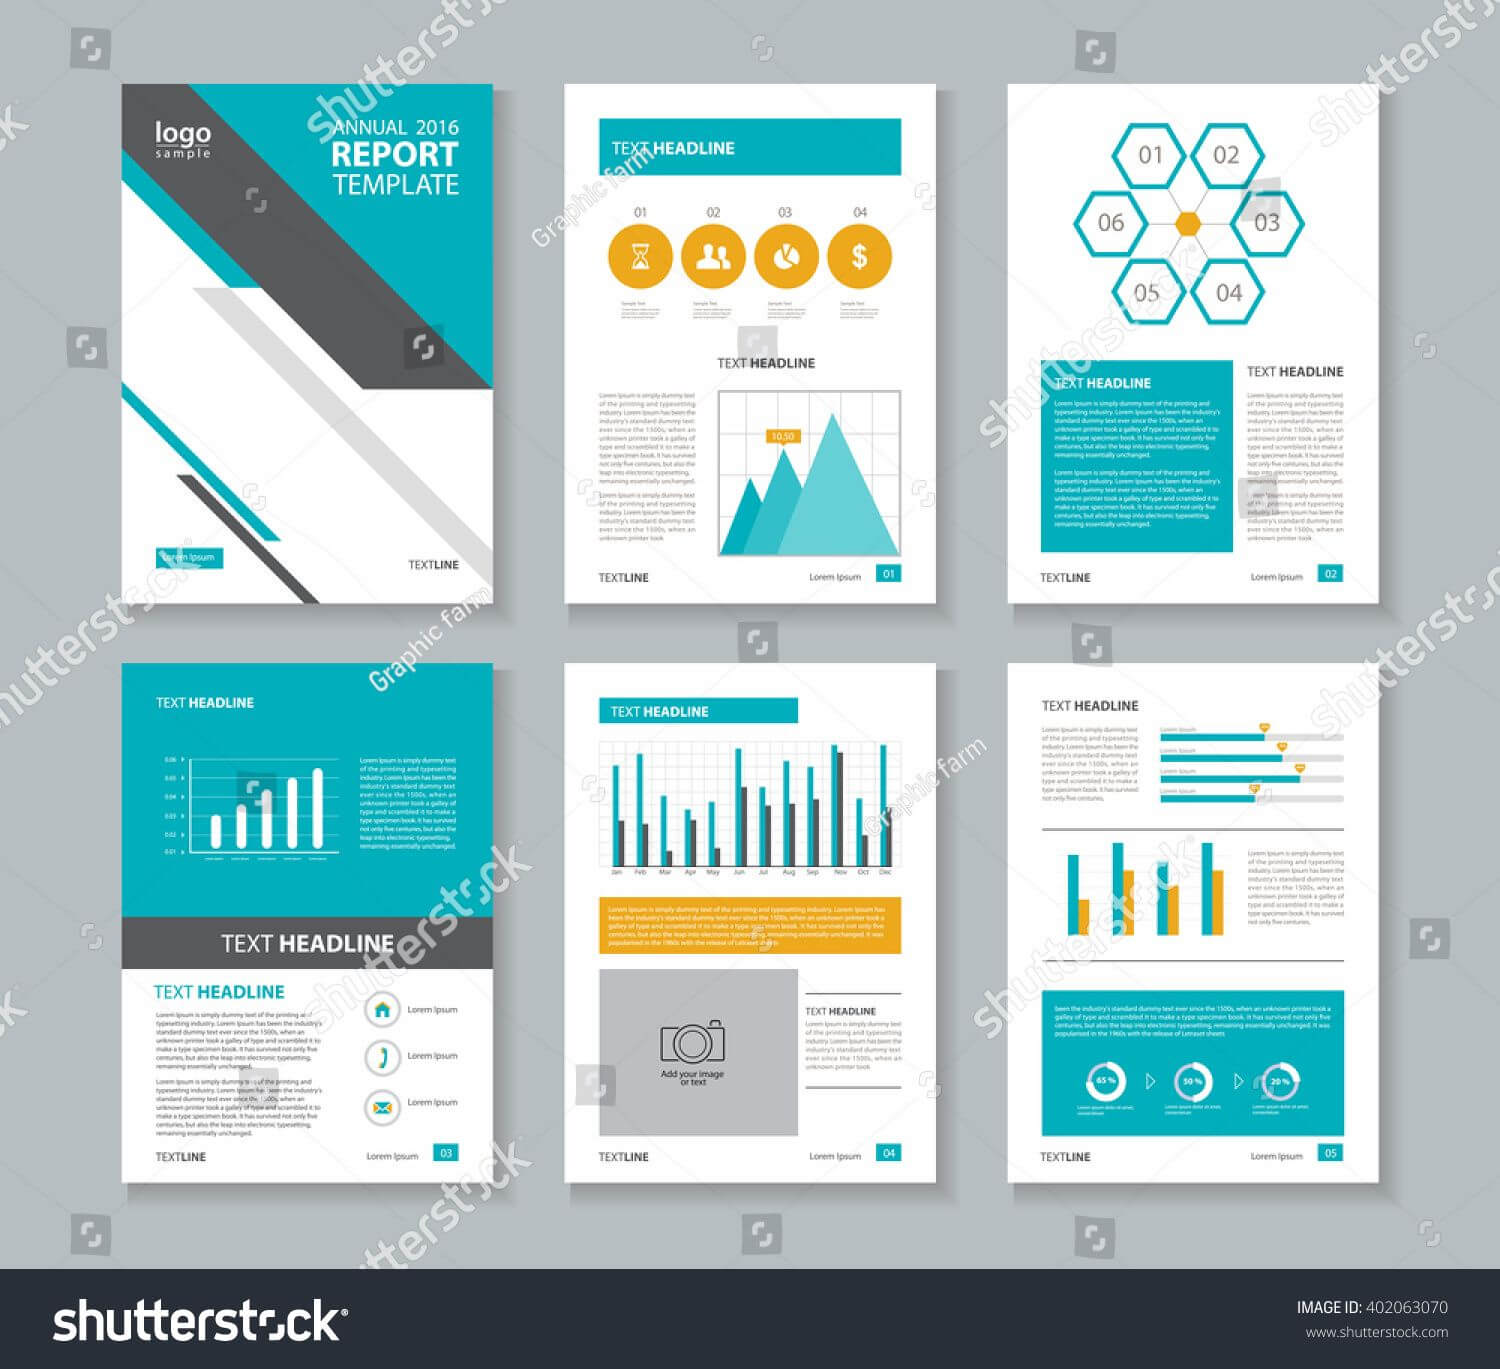 Pinsharon K On Design : Info Display   Company Profile Intended For Annual Report Template Word